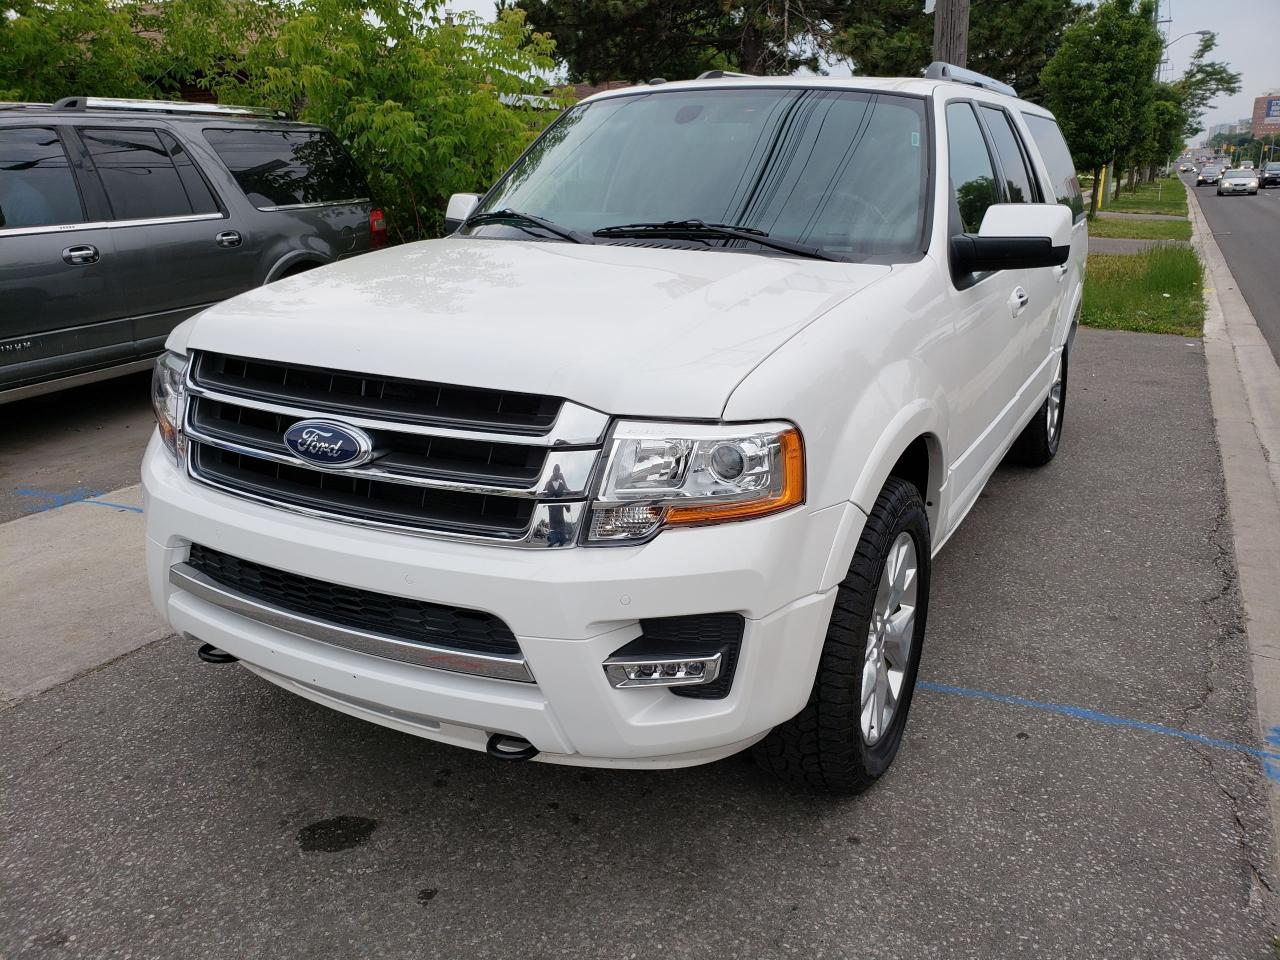 Used 2017 Ford Expedition Limited for Sale in Toronto, Ontario   Carpages.ca